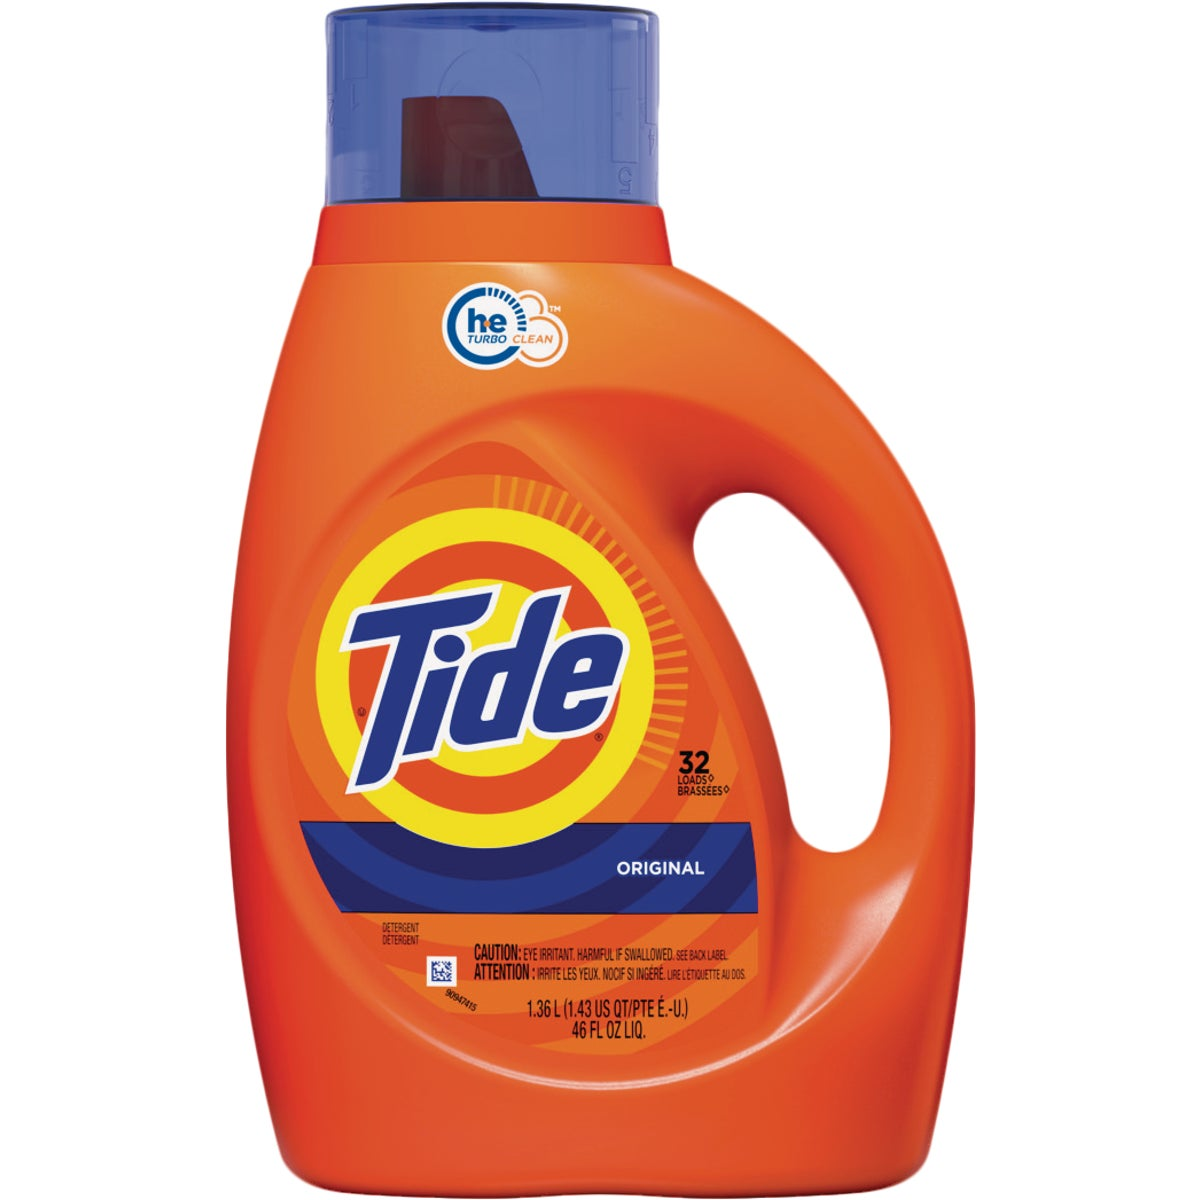 50OZ TIDE HE DETERGENT - 08875 by Procter & Gamble